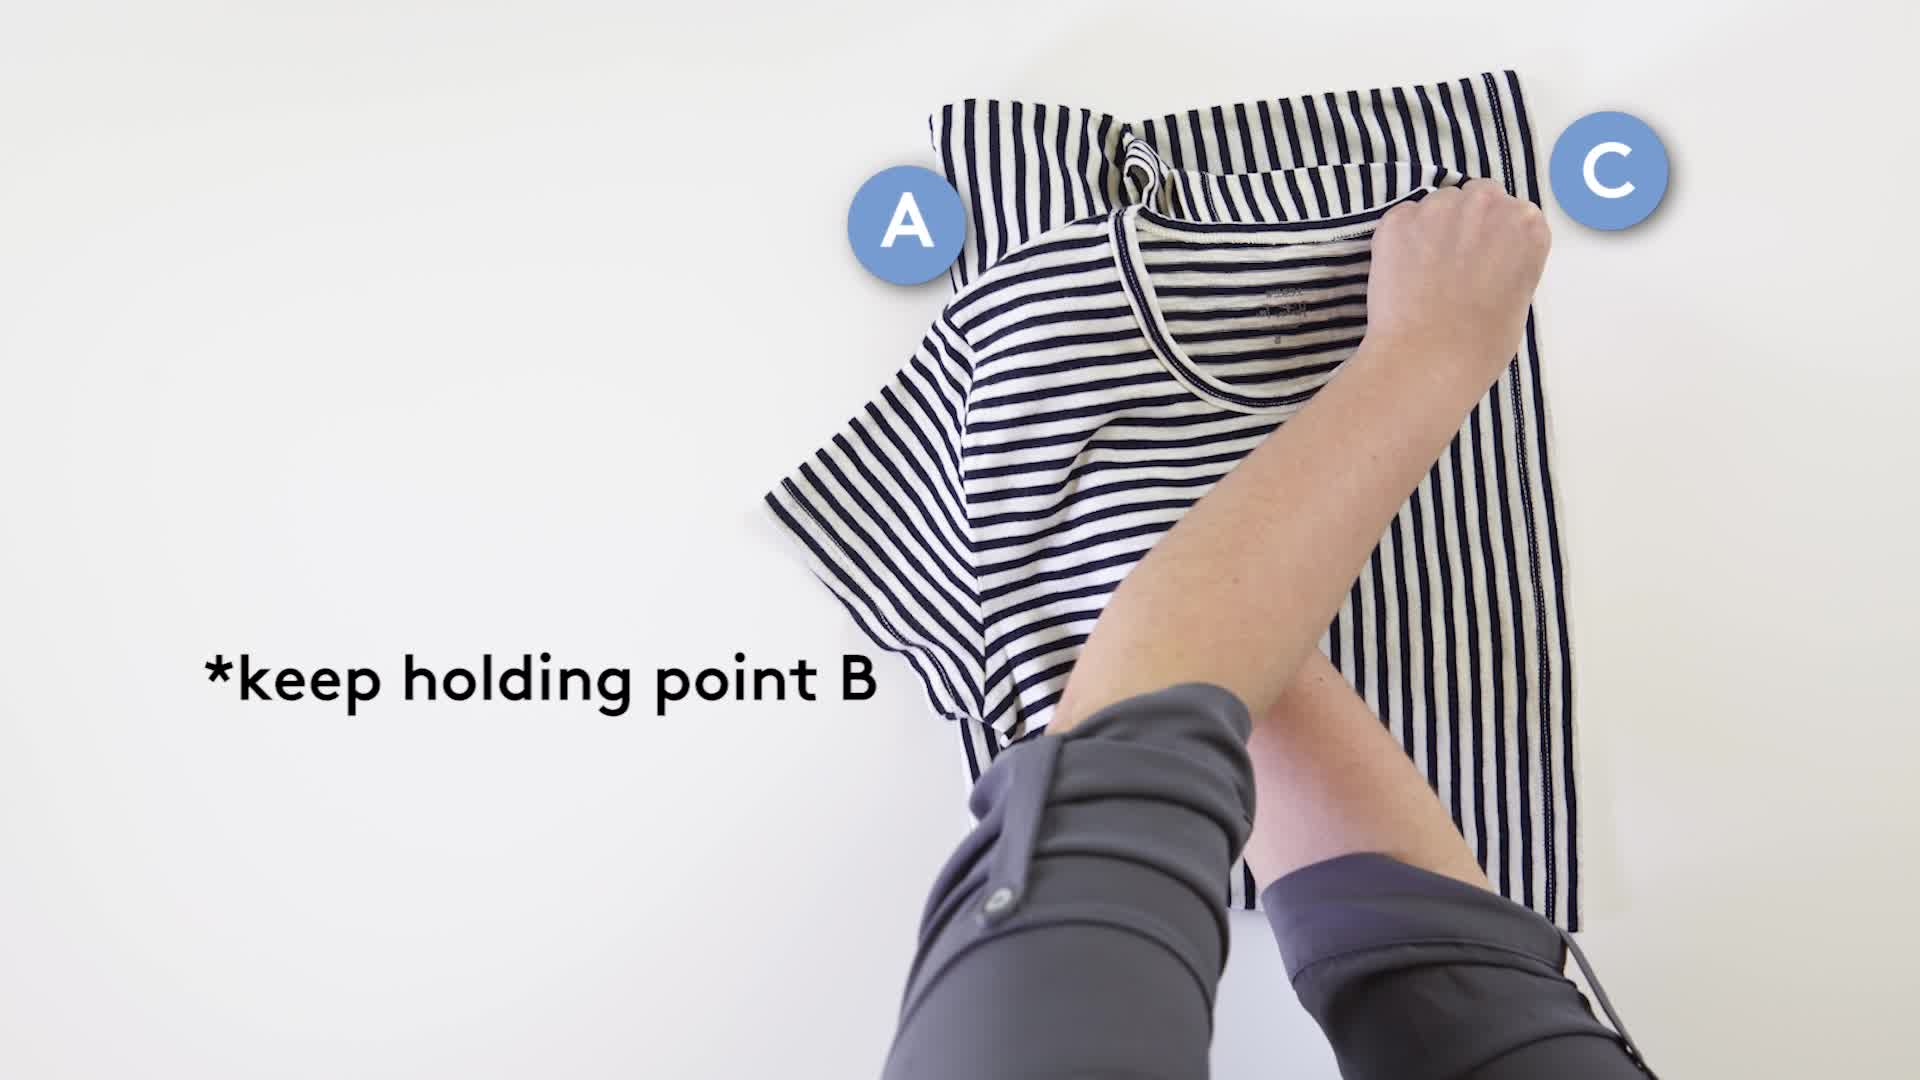 RELATED: How to Fold a T-Shirt